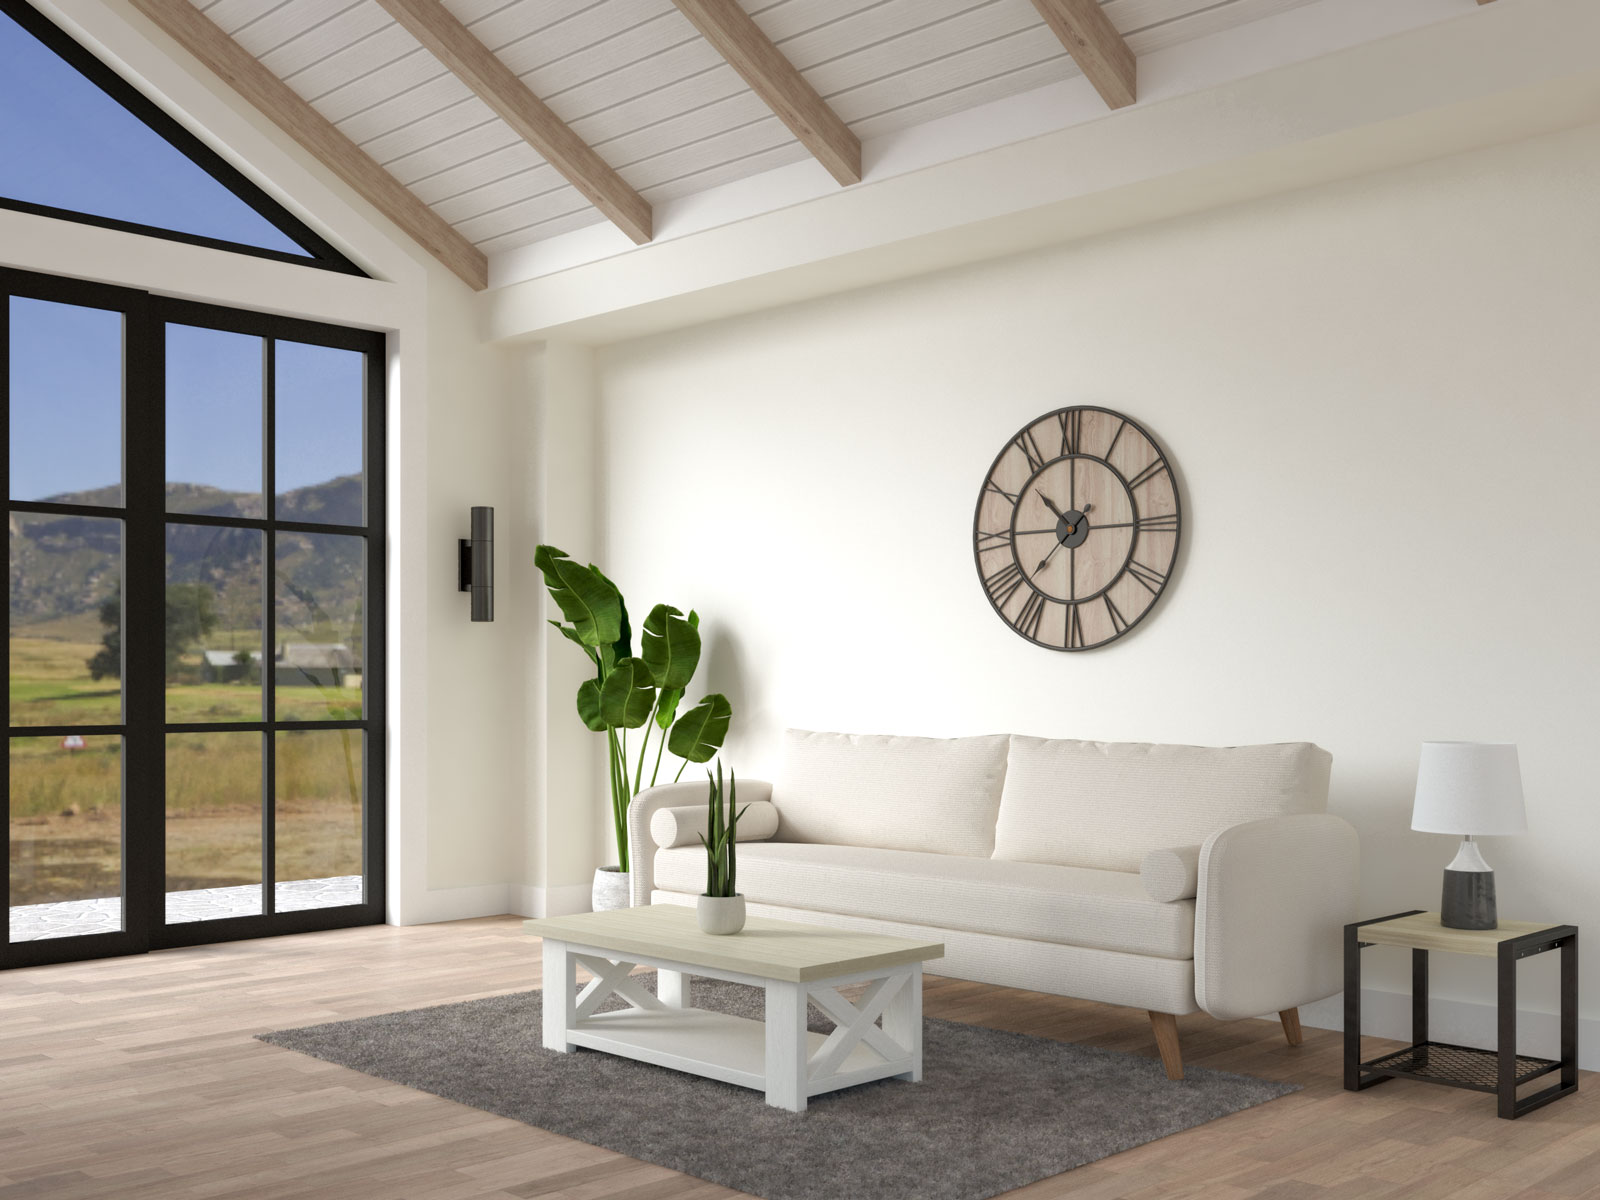 How to choose wall colors for farmhouse living room